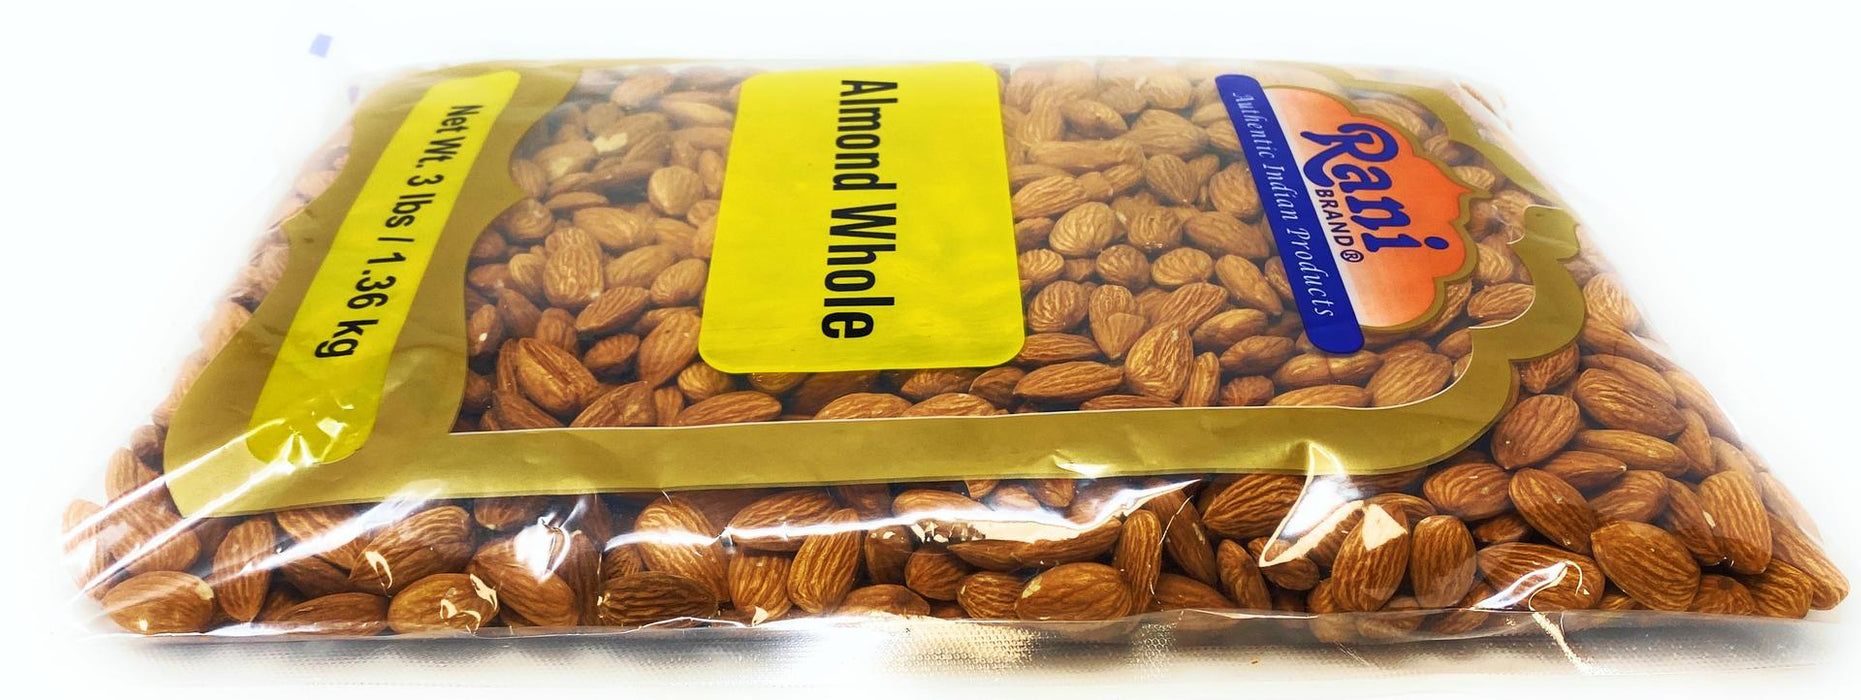 Rani Almonds, Raw Whole With Skin (uncooked, unsalted) 56oz (3lb) ~ All Natural | Vegan | Gluten Free Ingredients | Fresh Product of USA ~ California Shelled Almonds